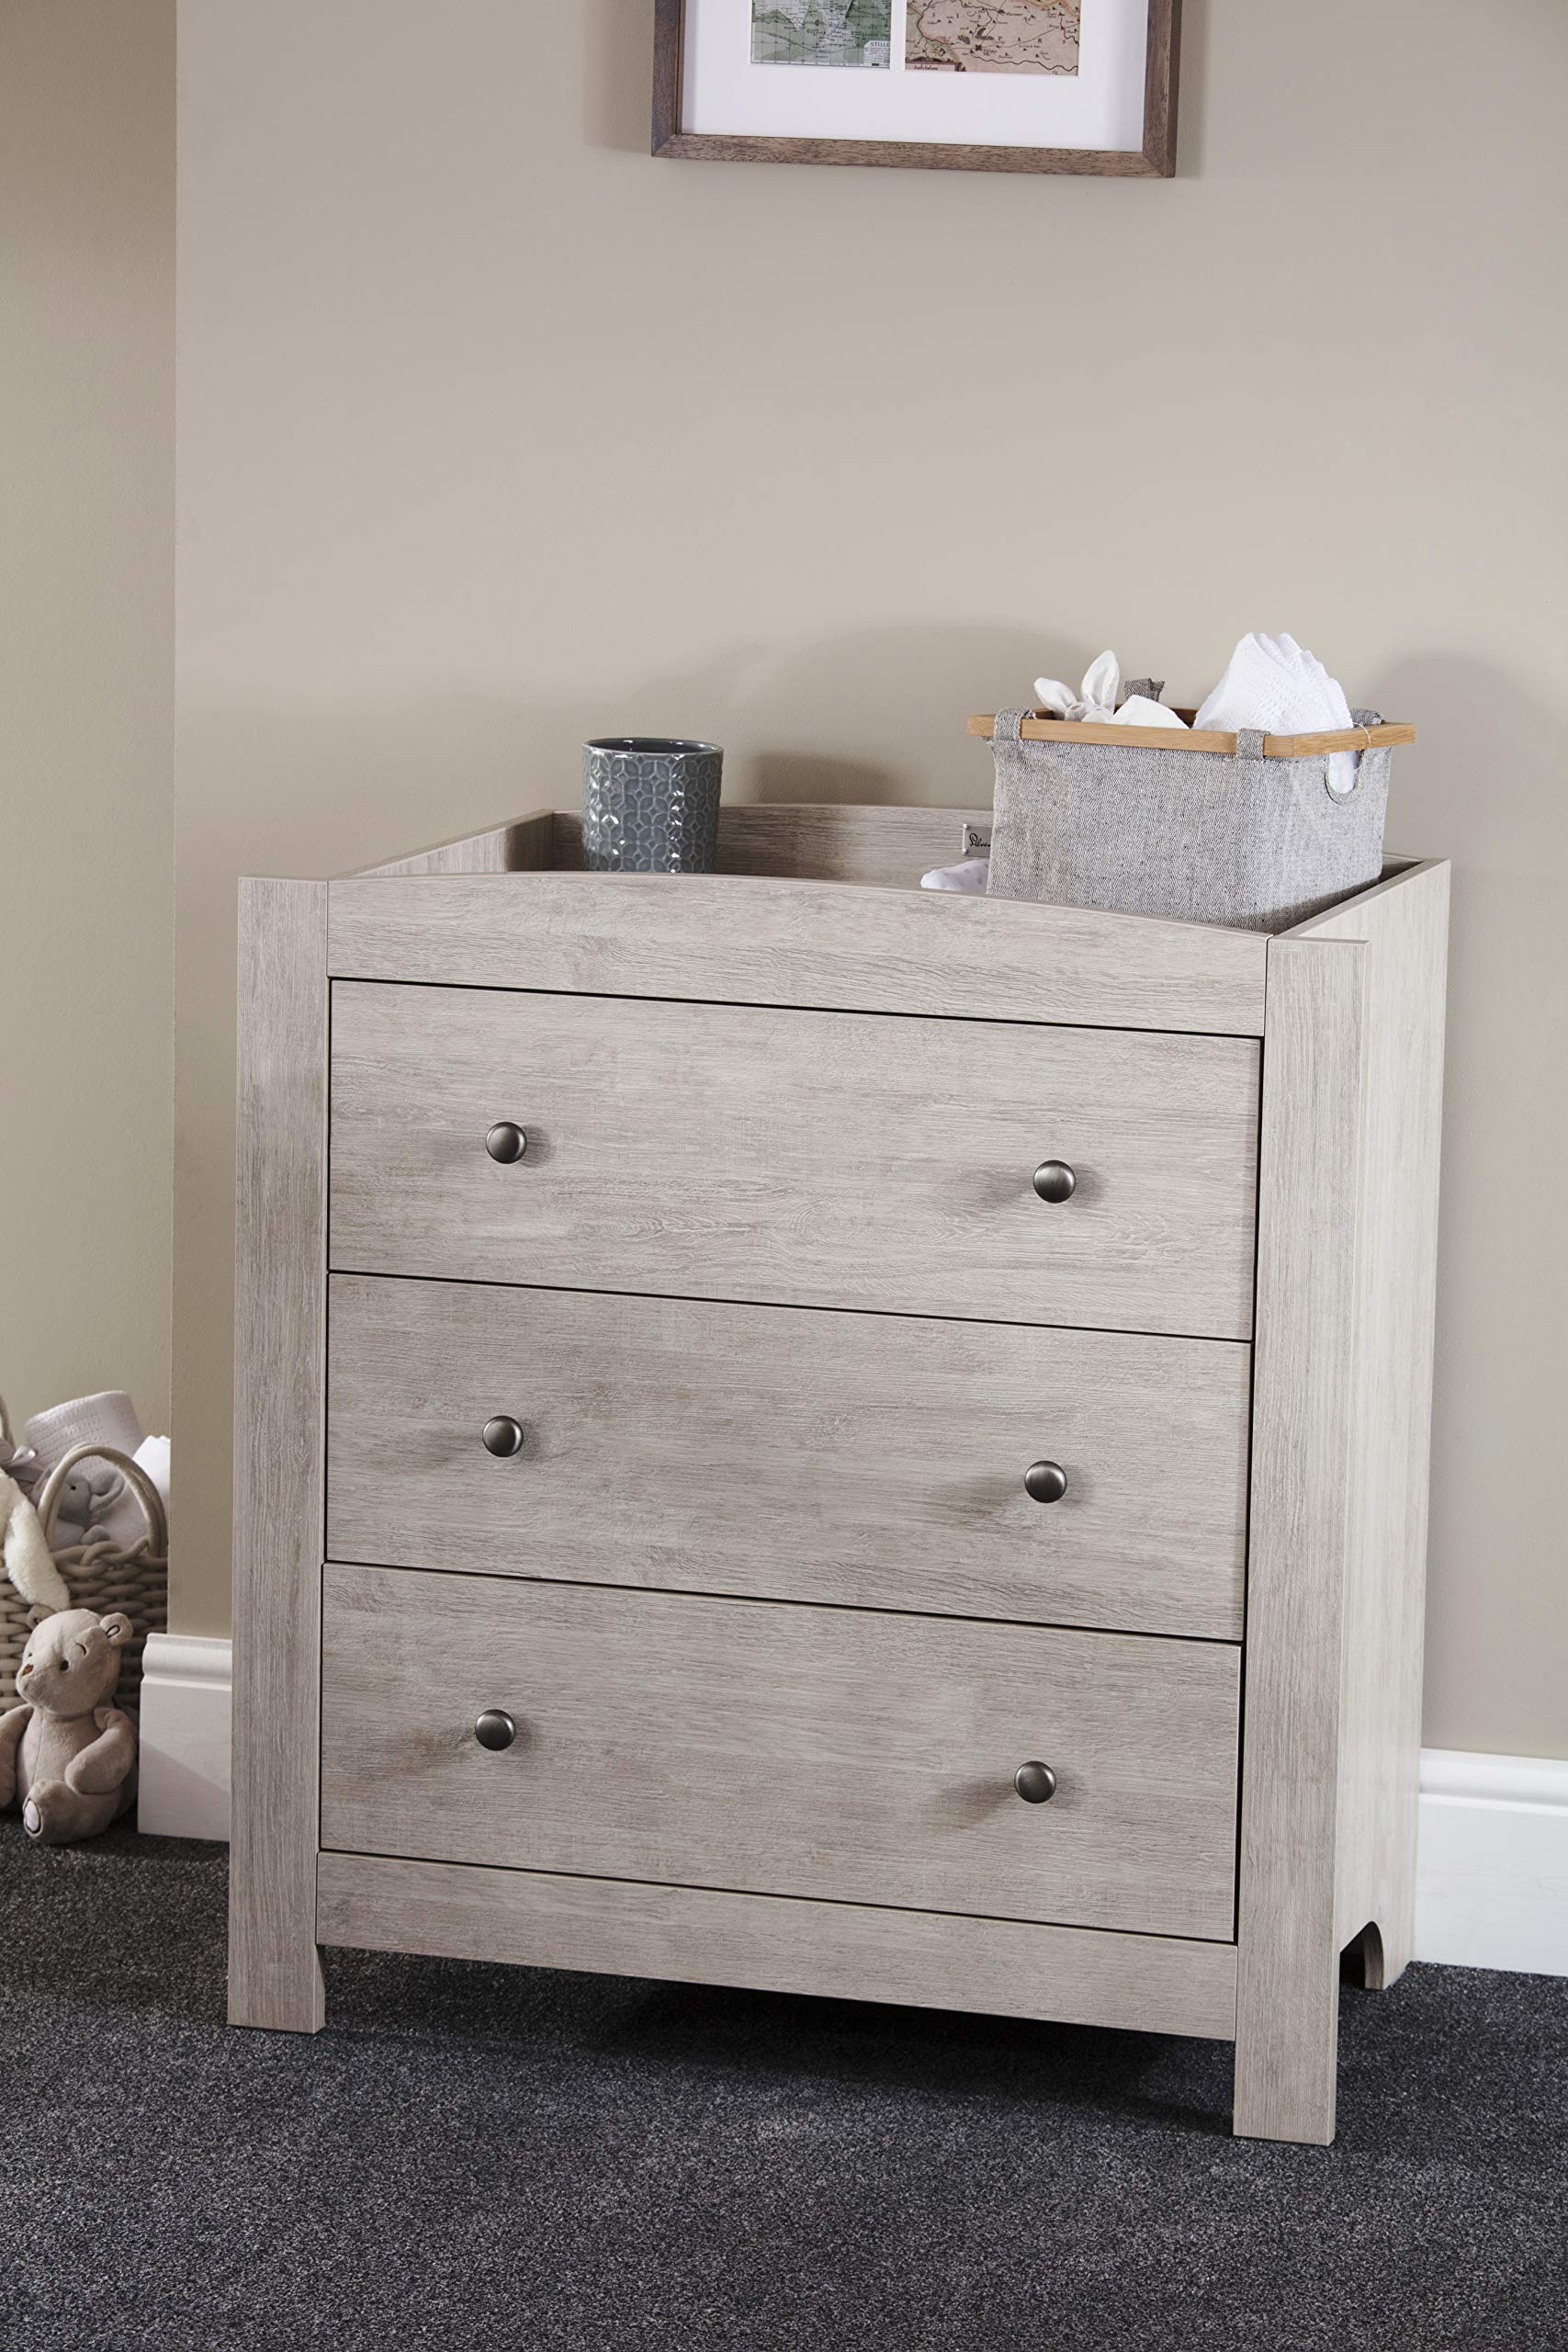 Silver Cross New England Cot Bed and Dresser Silver Cross 3 base height positions Suitable from birth to 4 years Converts into toddler bed 9